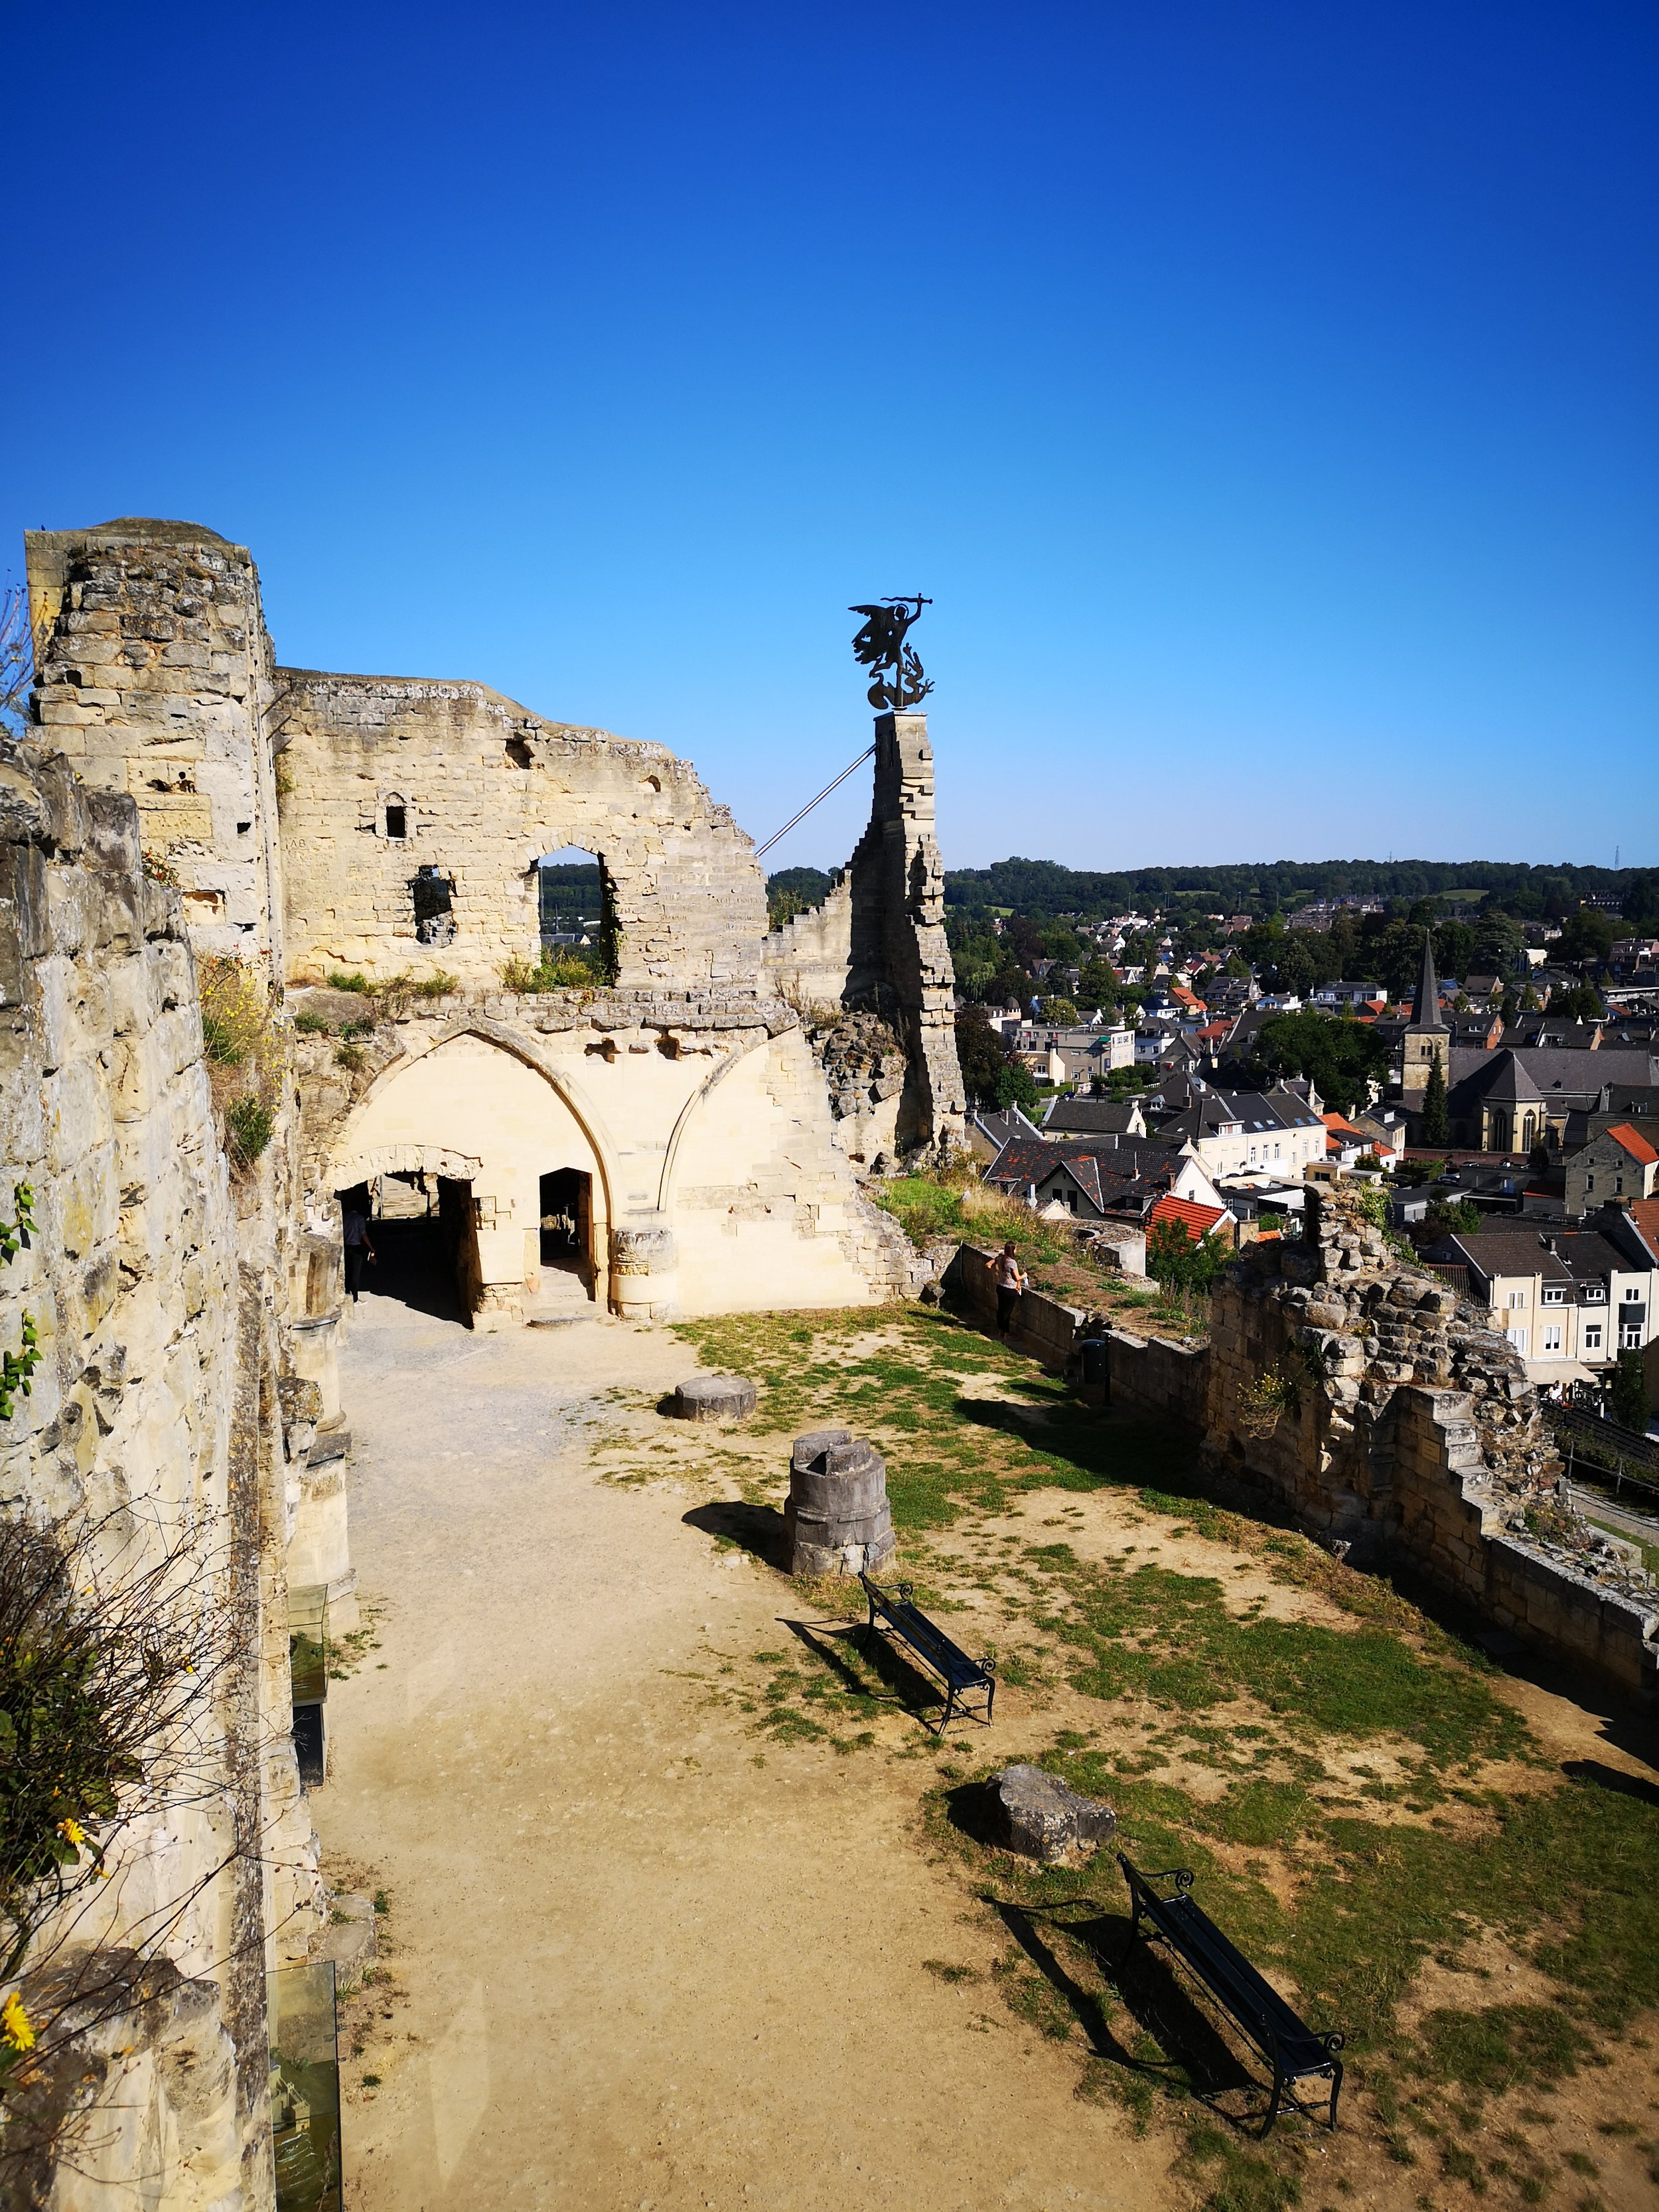 The Valkeburg castle ruin